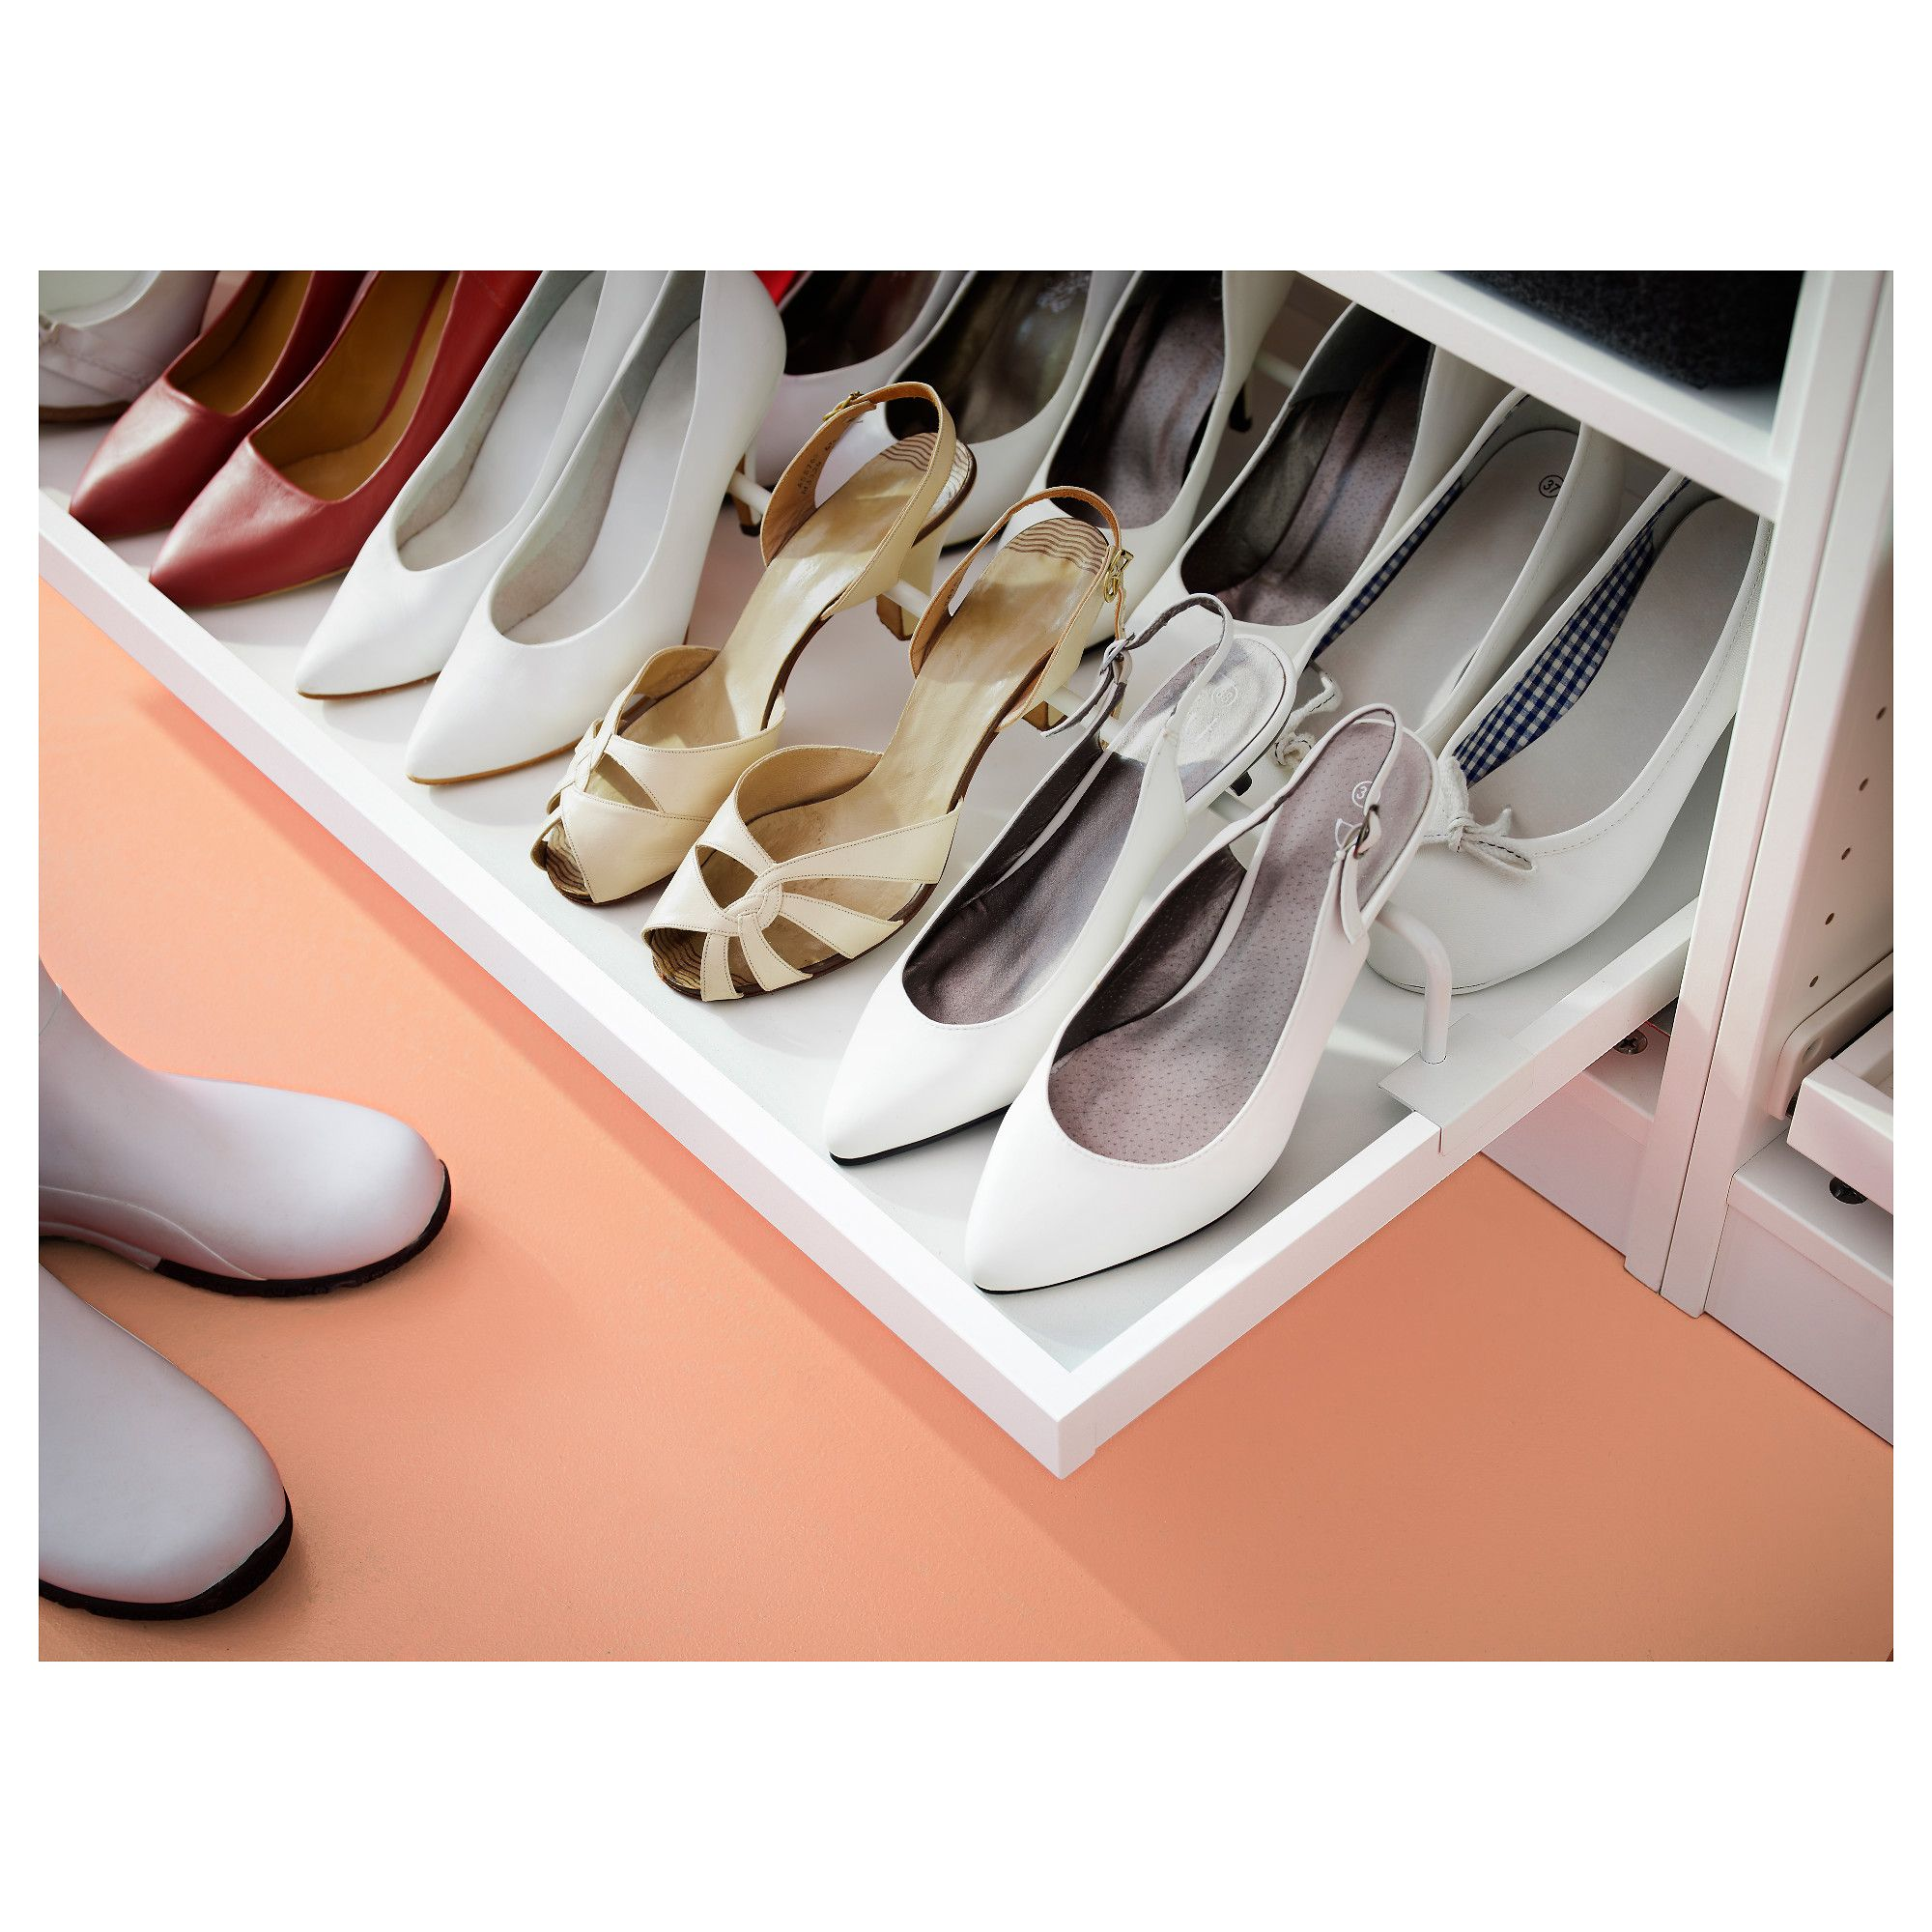 Cool IKEA KOMPLEMENT pull out tray with shoe rail